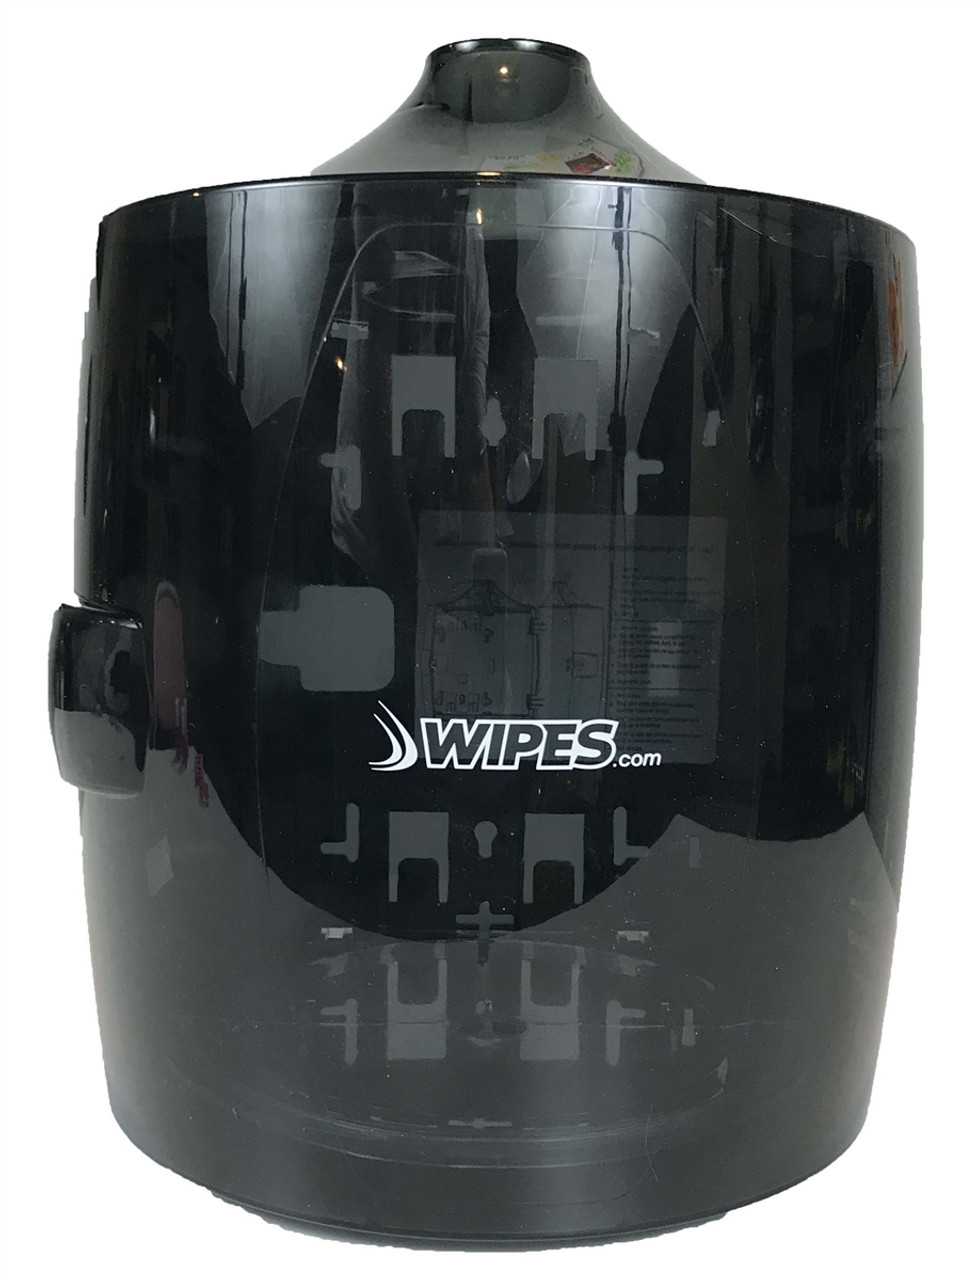 Wipes.com Wall Mounted Wipe Dispenser